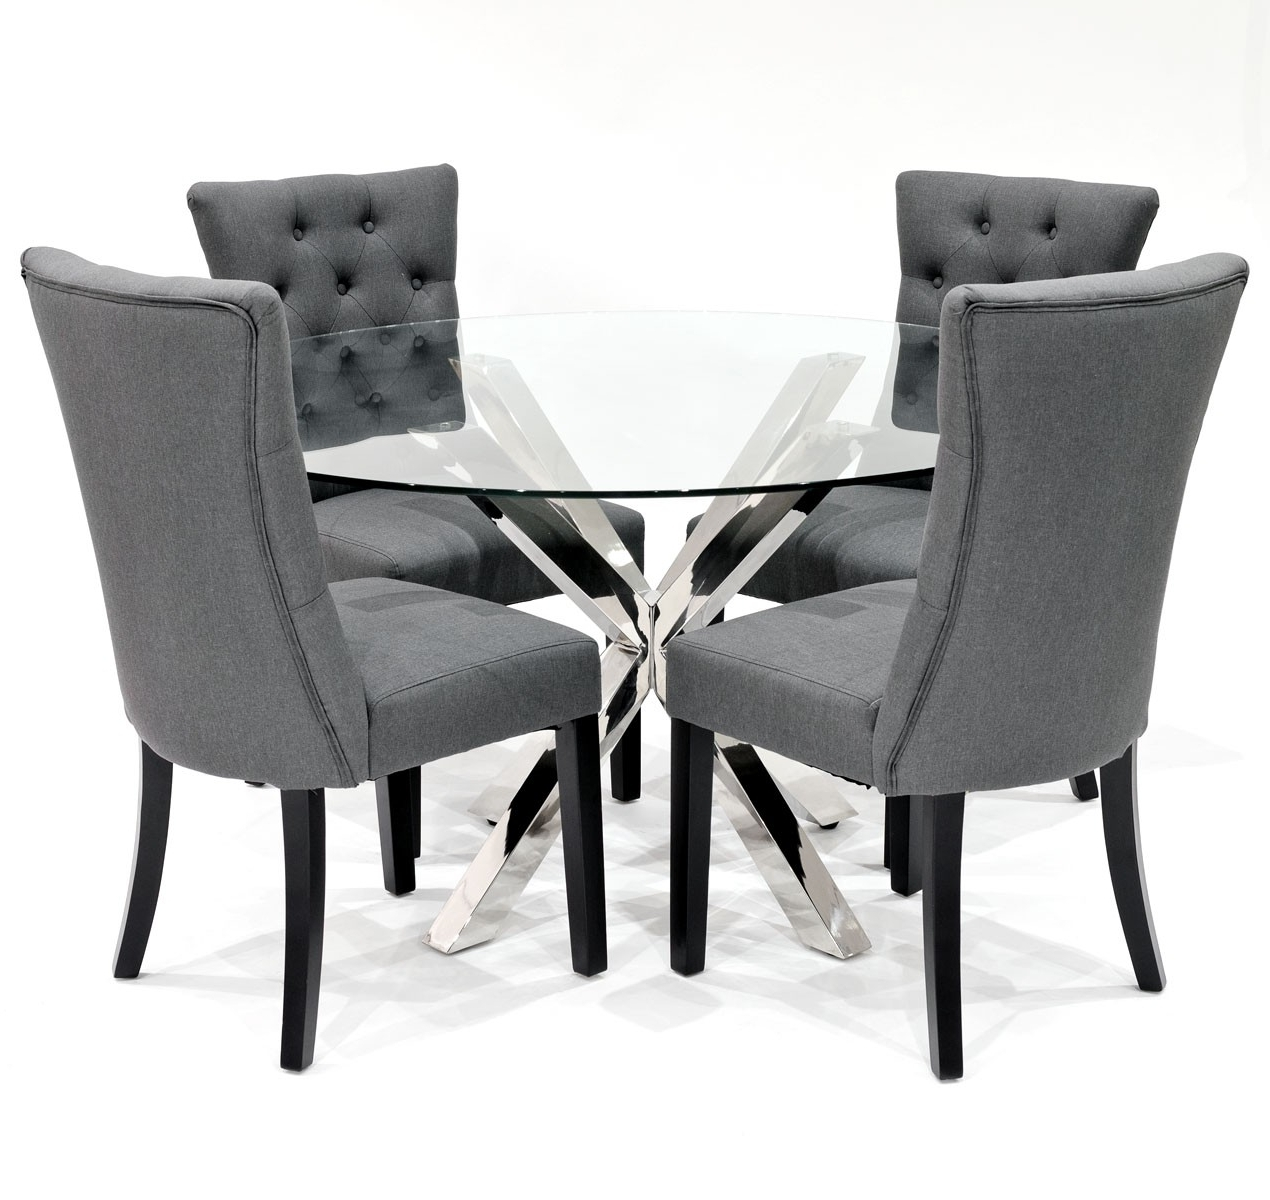 Preferred Grey Dining Chairs Pertaining To Crossly Dining Table And Sanderson Grey Dining Chair Set – Be Fabulous! (Gallery 2 of 25)